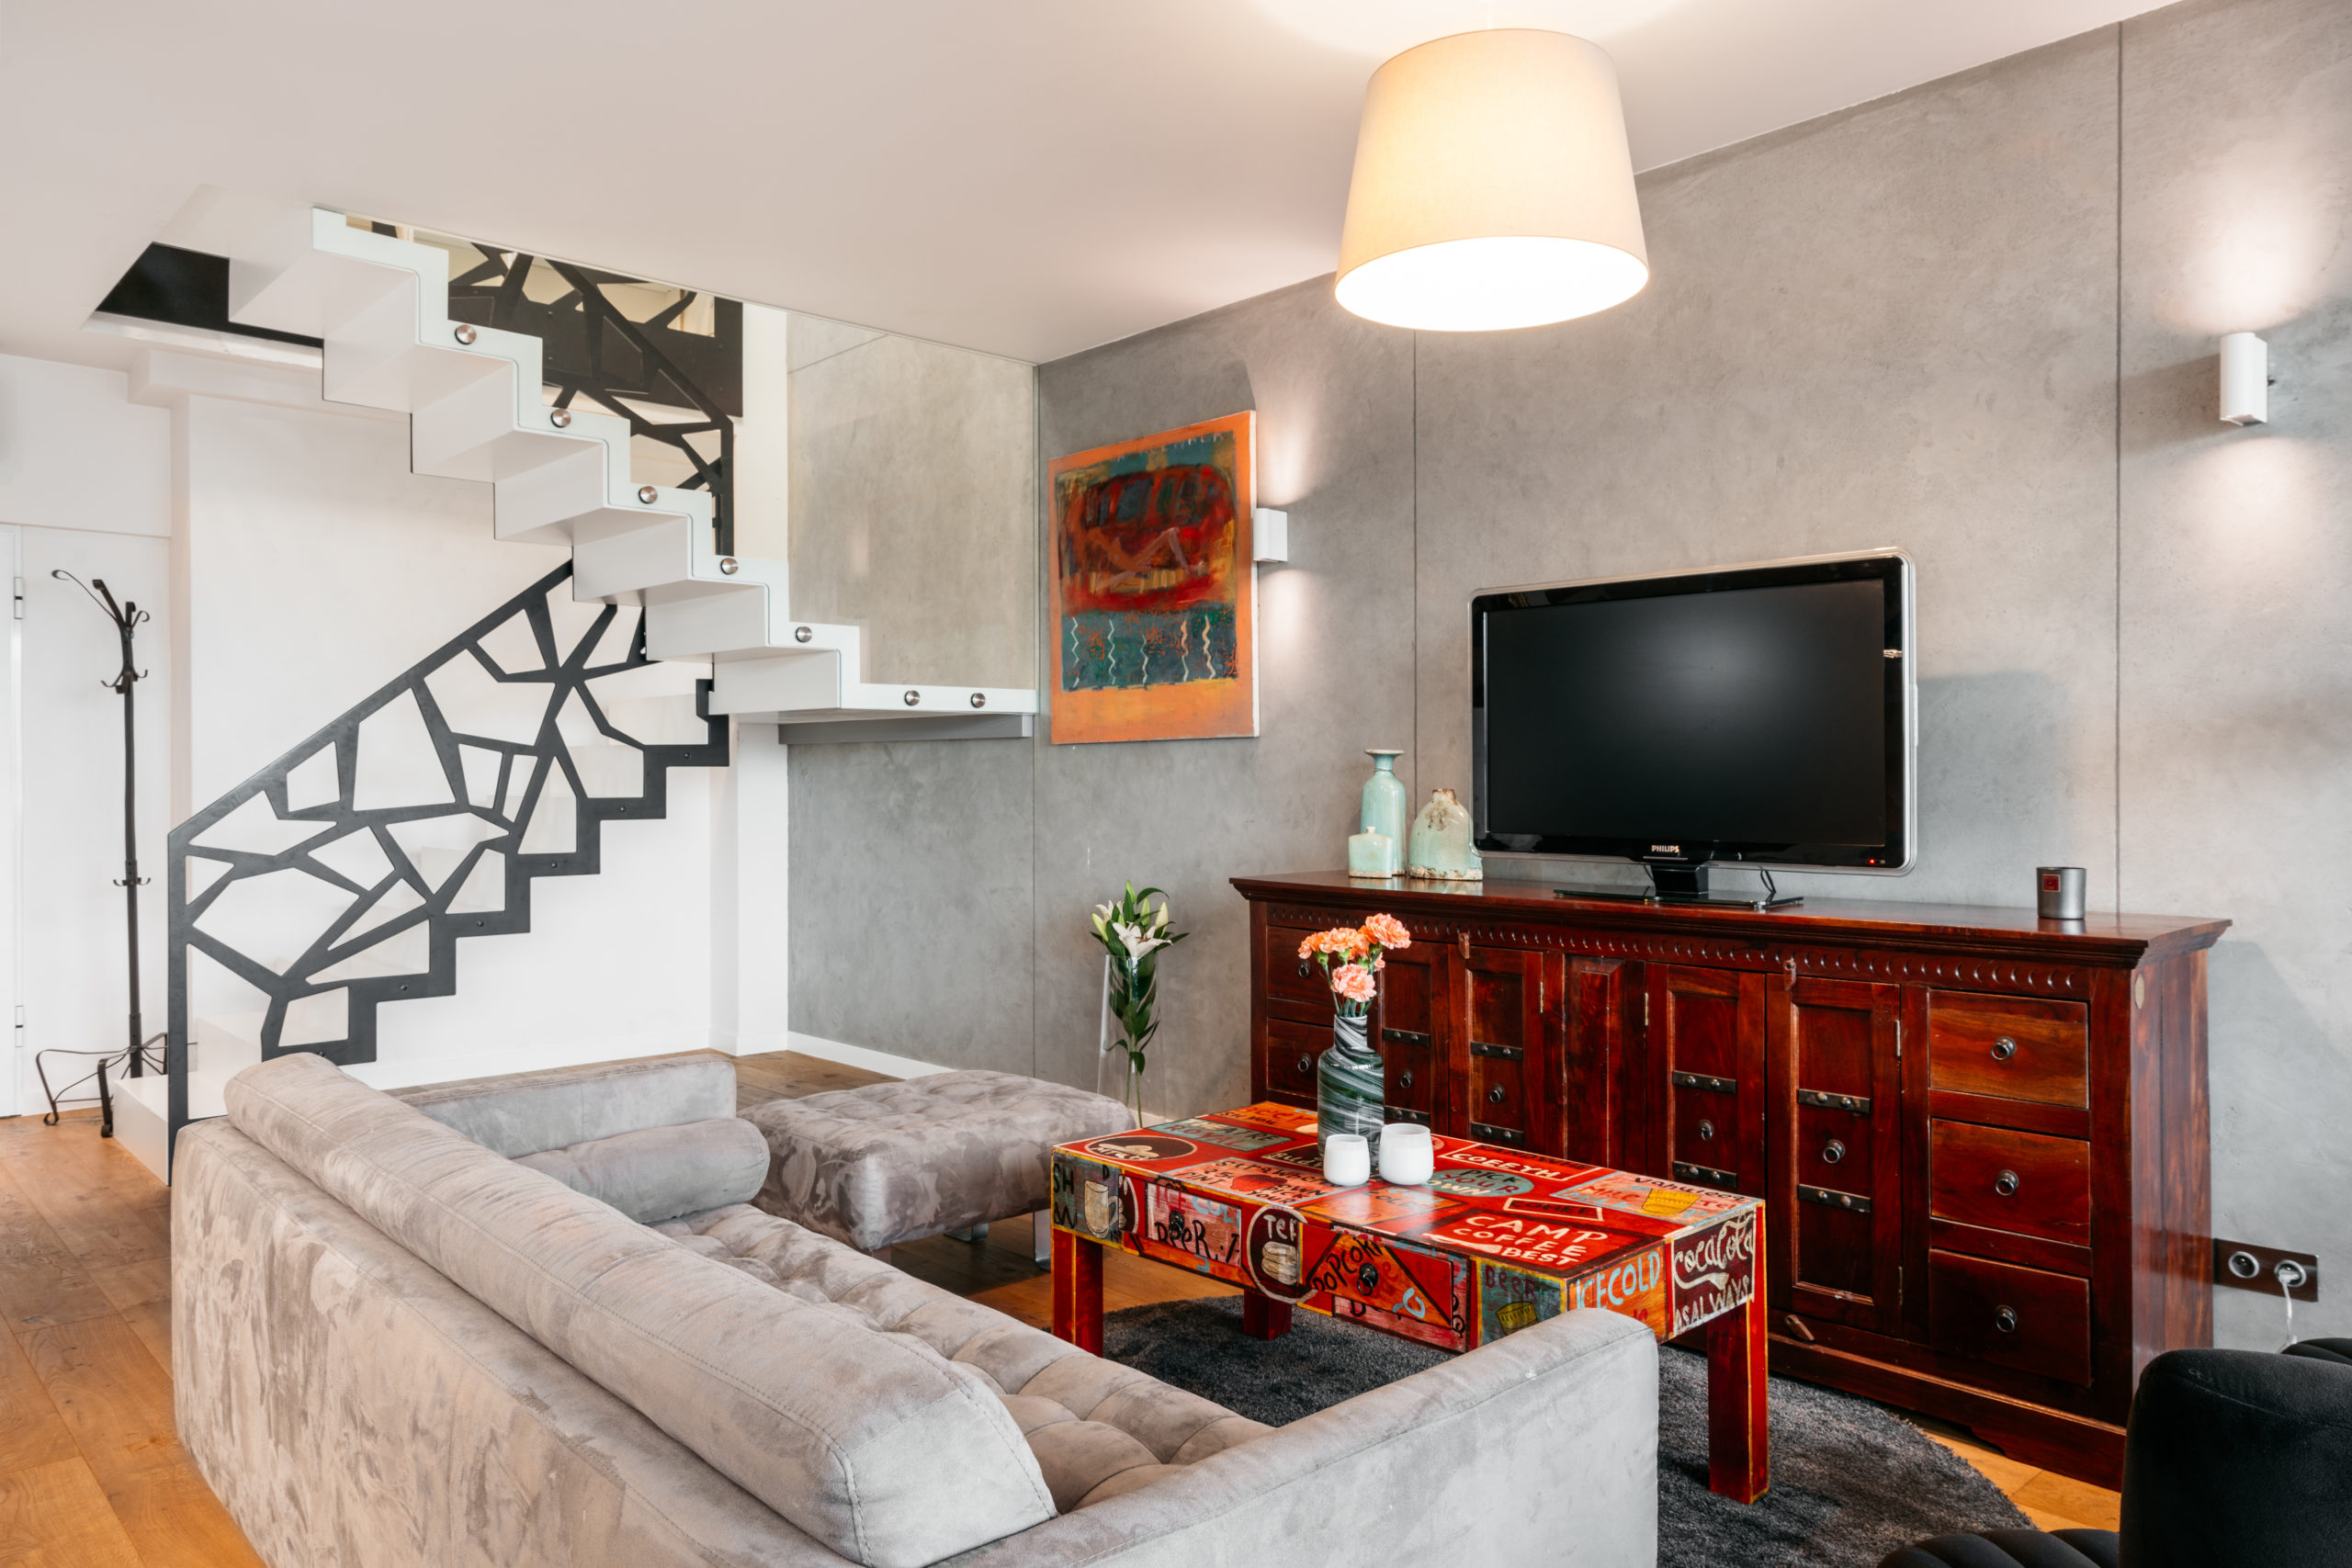 Paris Rue des Lombards Apartment for rent